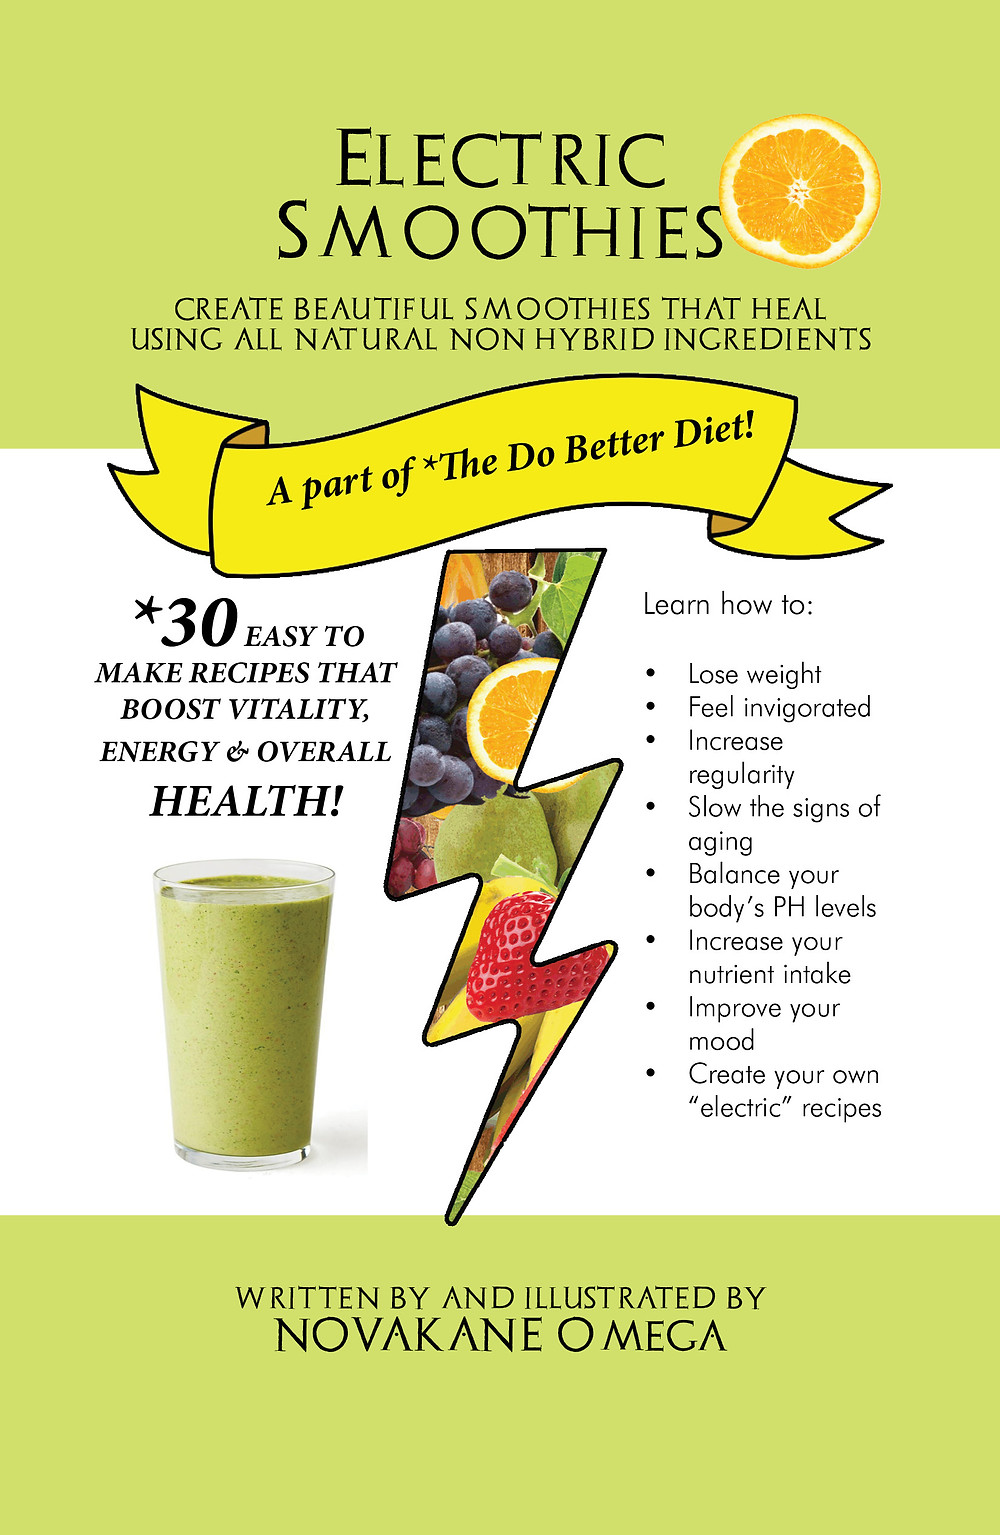 Electric Smoothie Ebook- Non Hybrid Smoothies